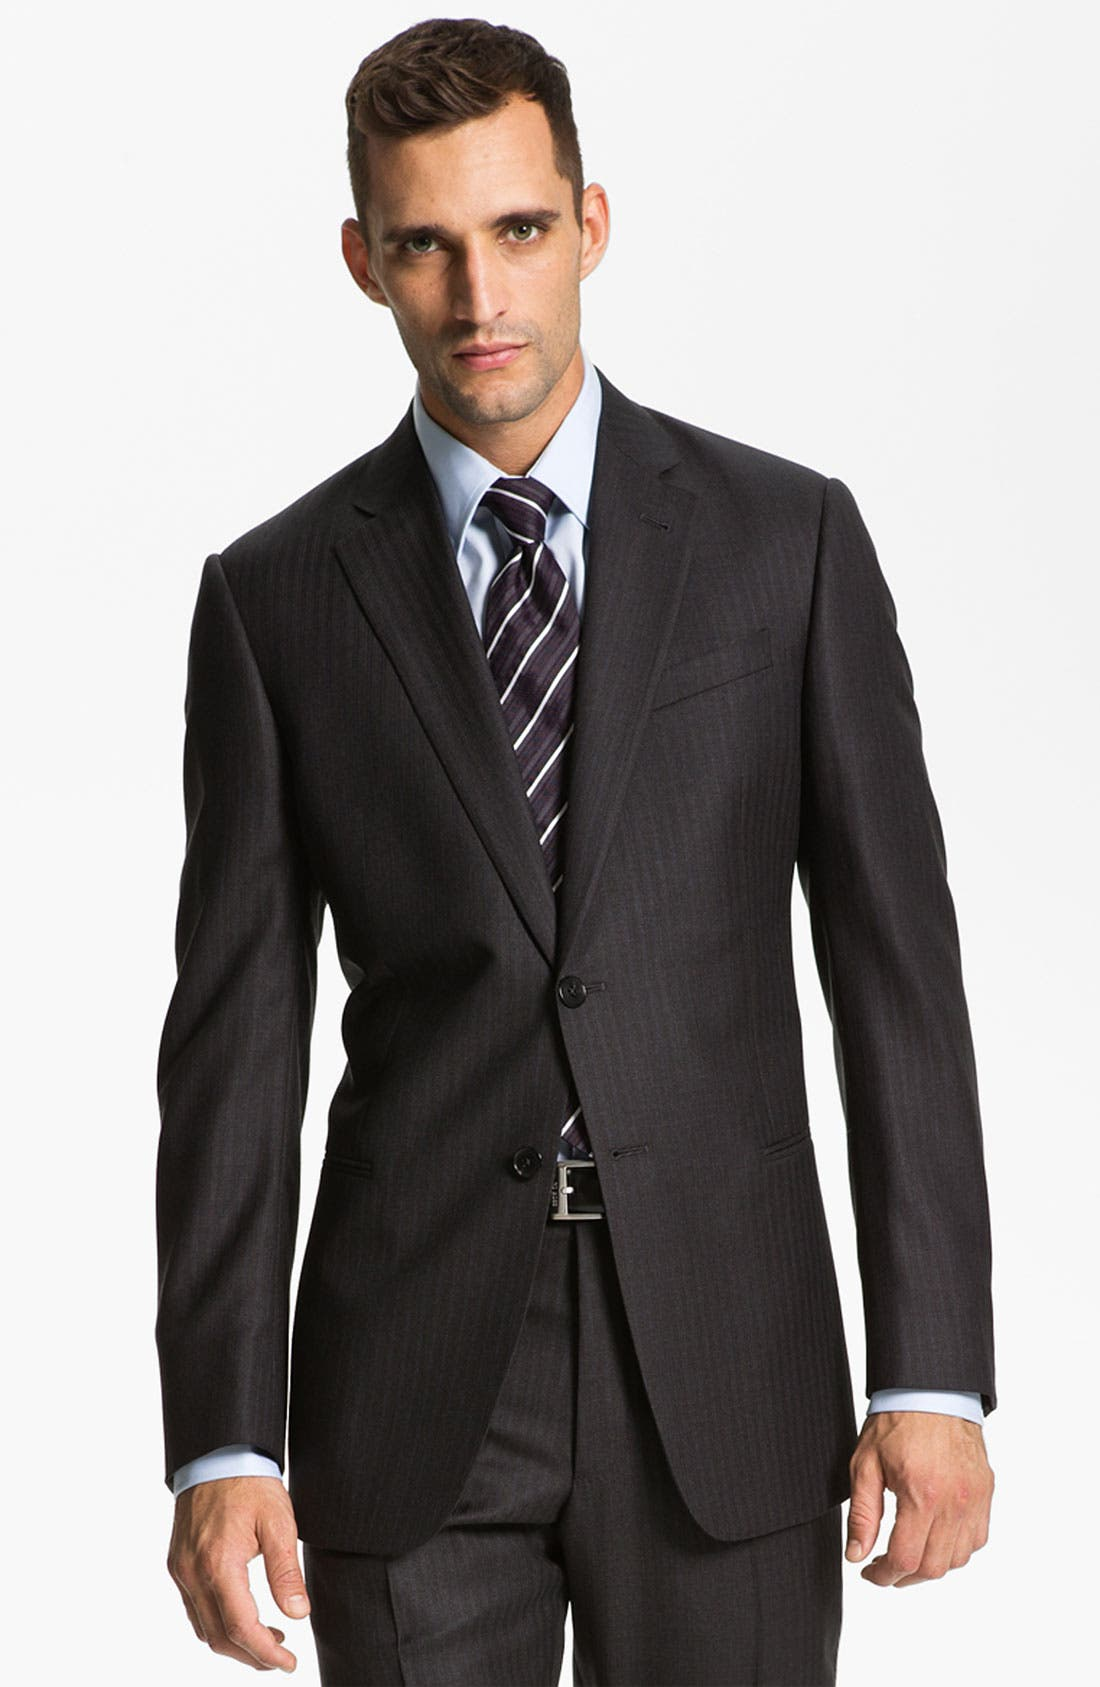 Alternate Image 1 Selected - Armani Collezioni 'Giorgio' Trim Fit Stripe Suit